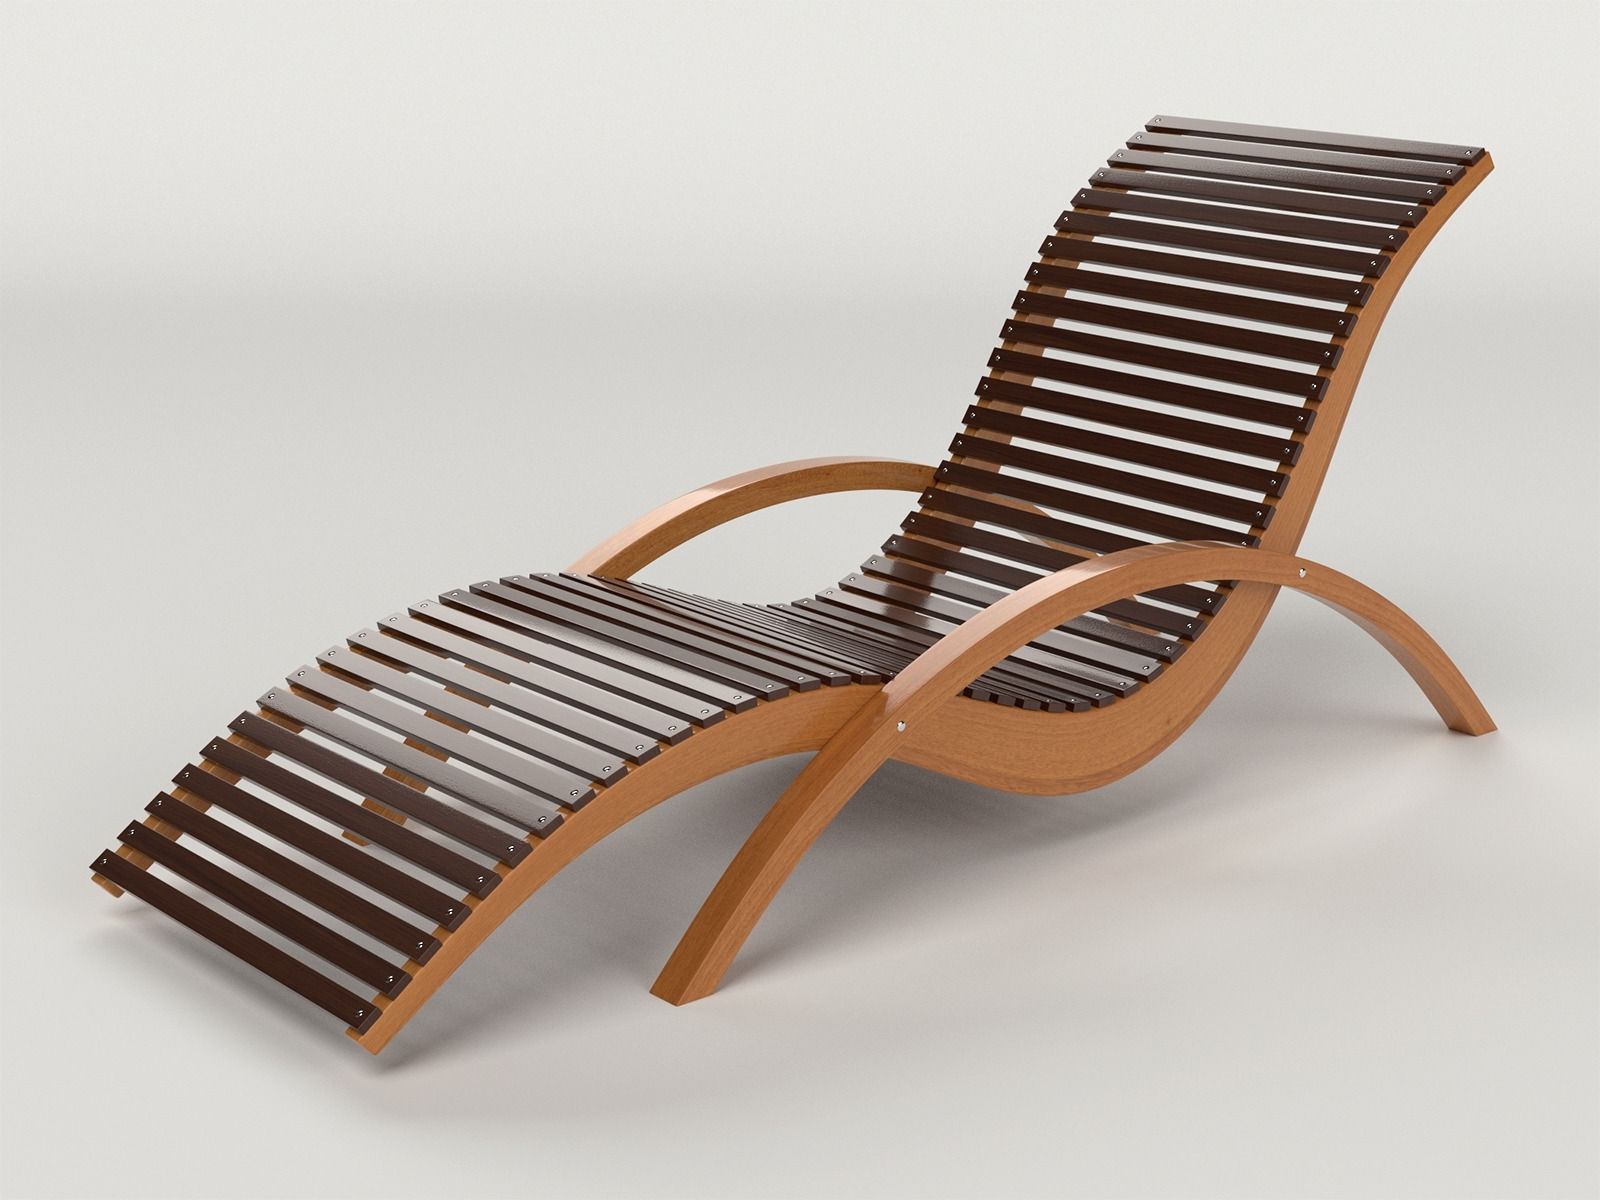 Wooden Outdoor Chaise Lounge Chairs Inside 2017 Lounge Chair : Outdoor Mesh Chaise Lounge Chairs Outside Chaise (View 14 of 15)